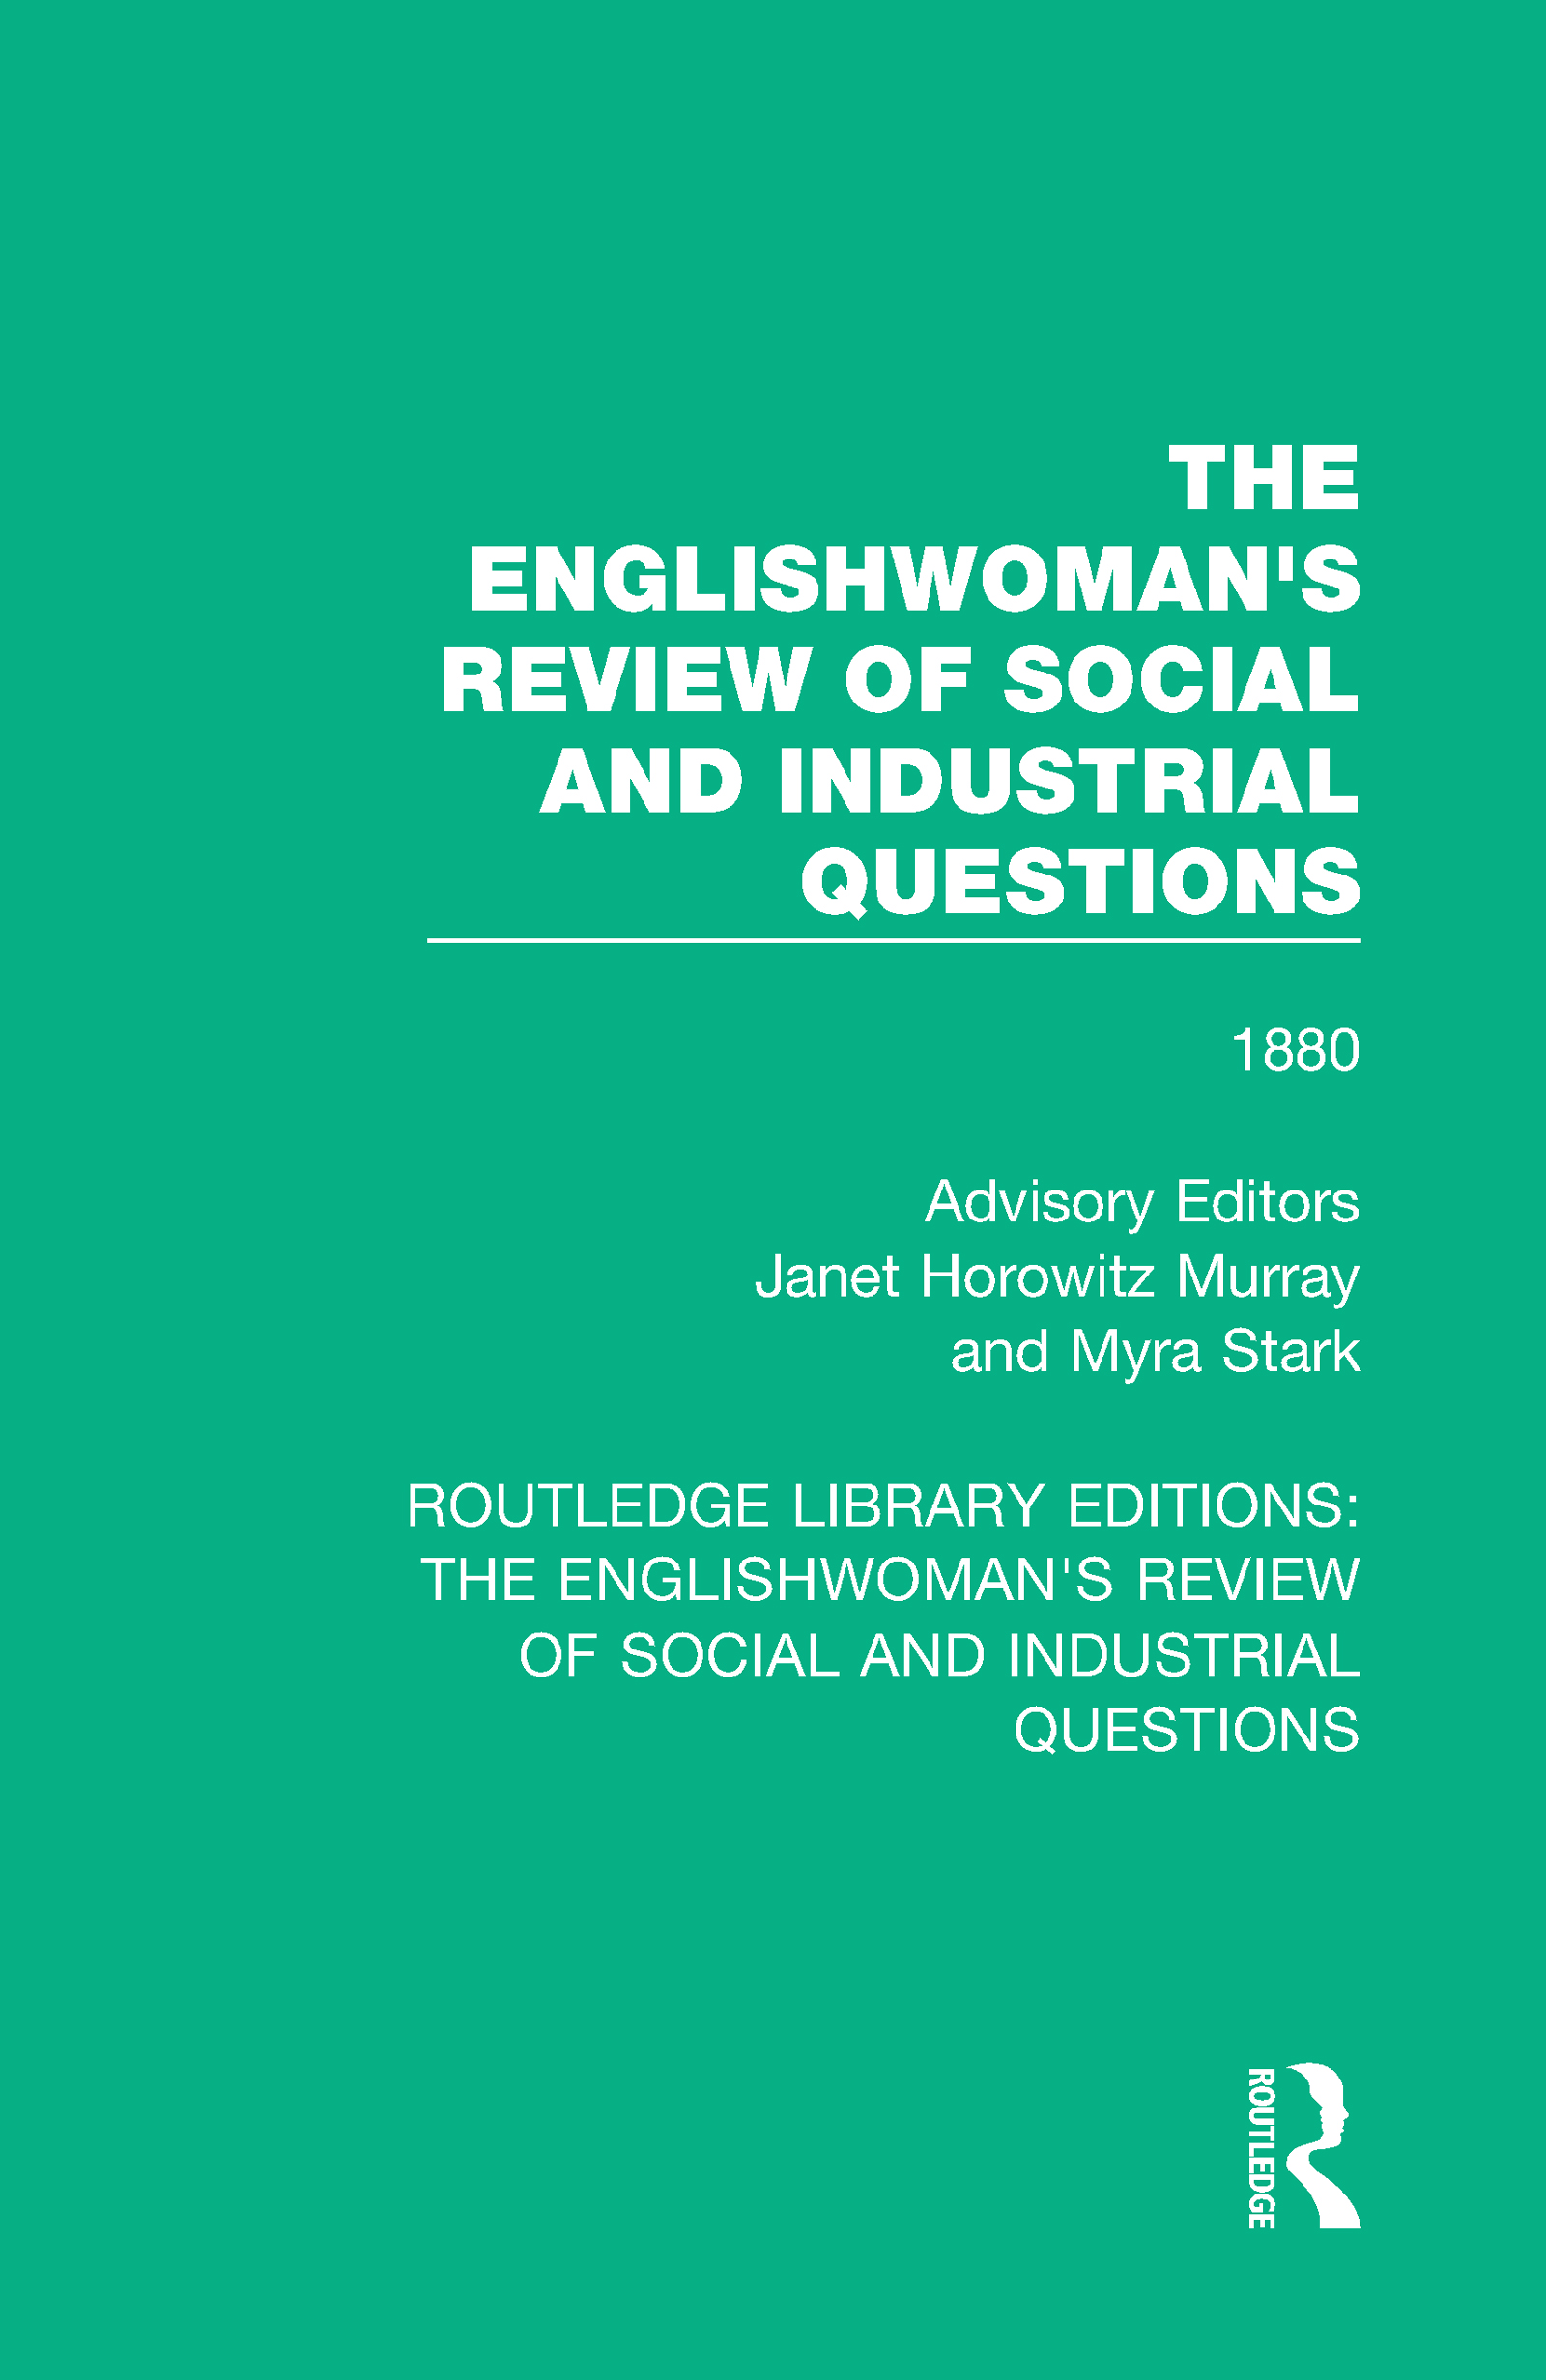 The Englishwoman's Review of Social and Industrial Questions: 1880 book cover